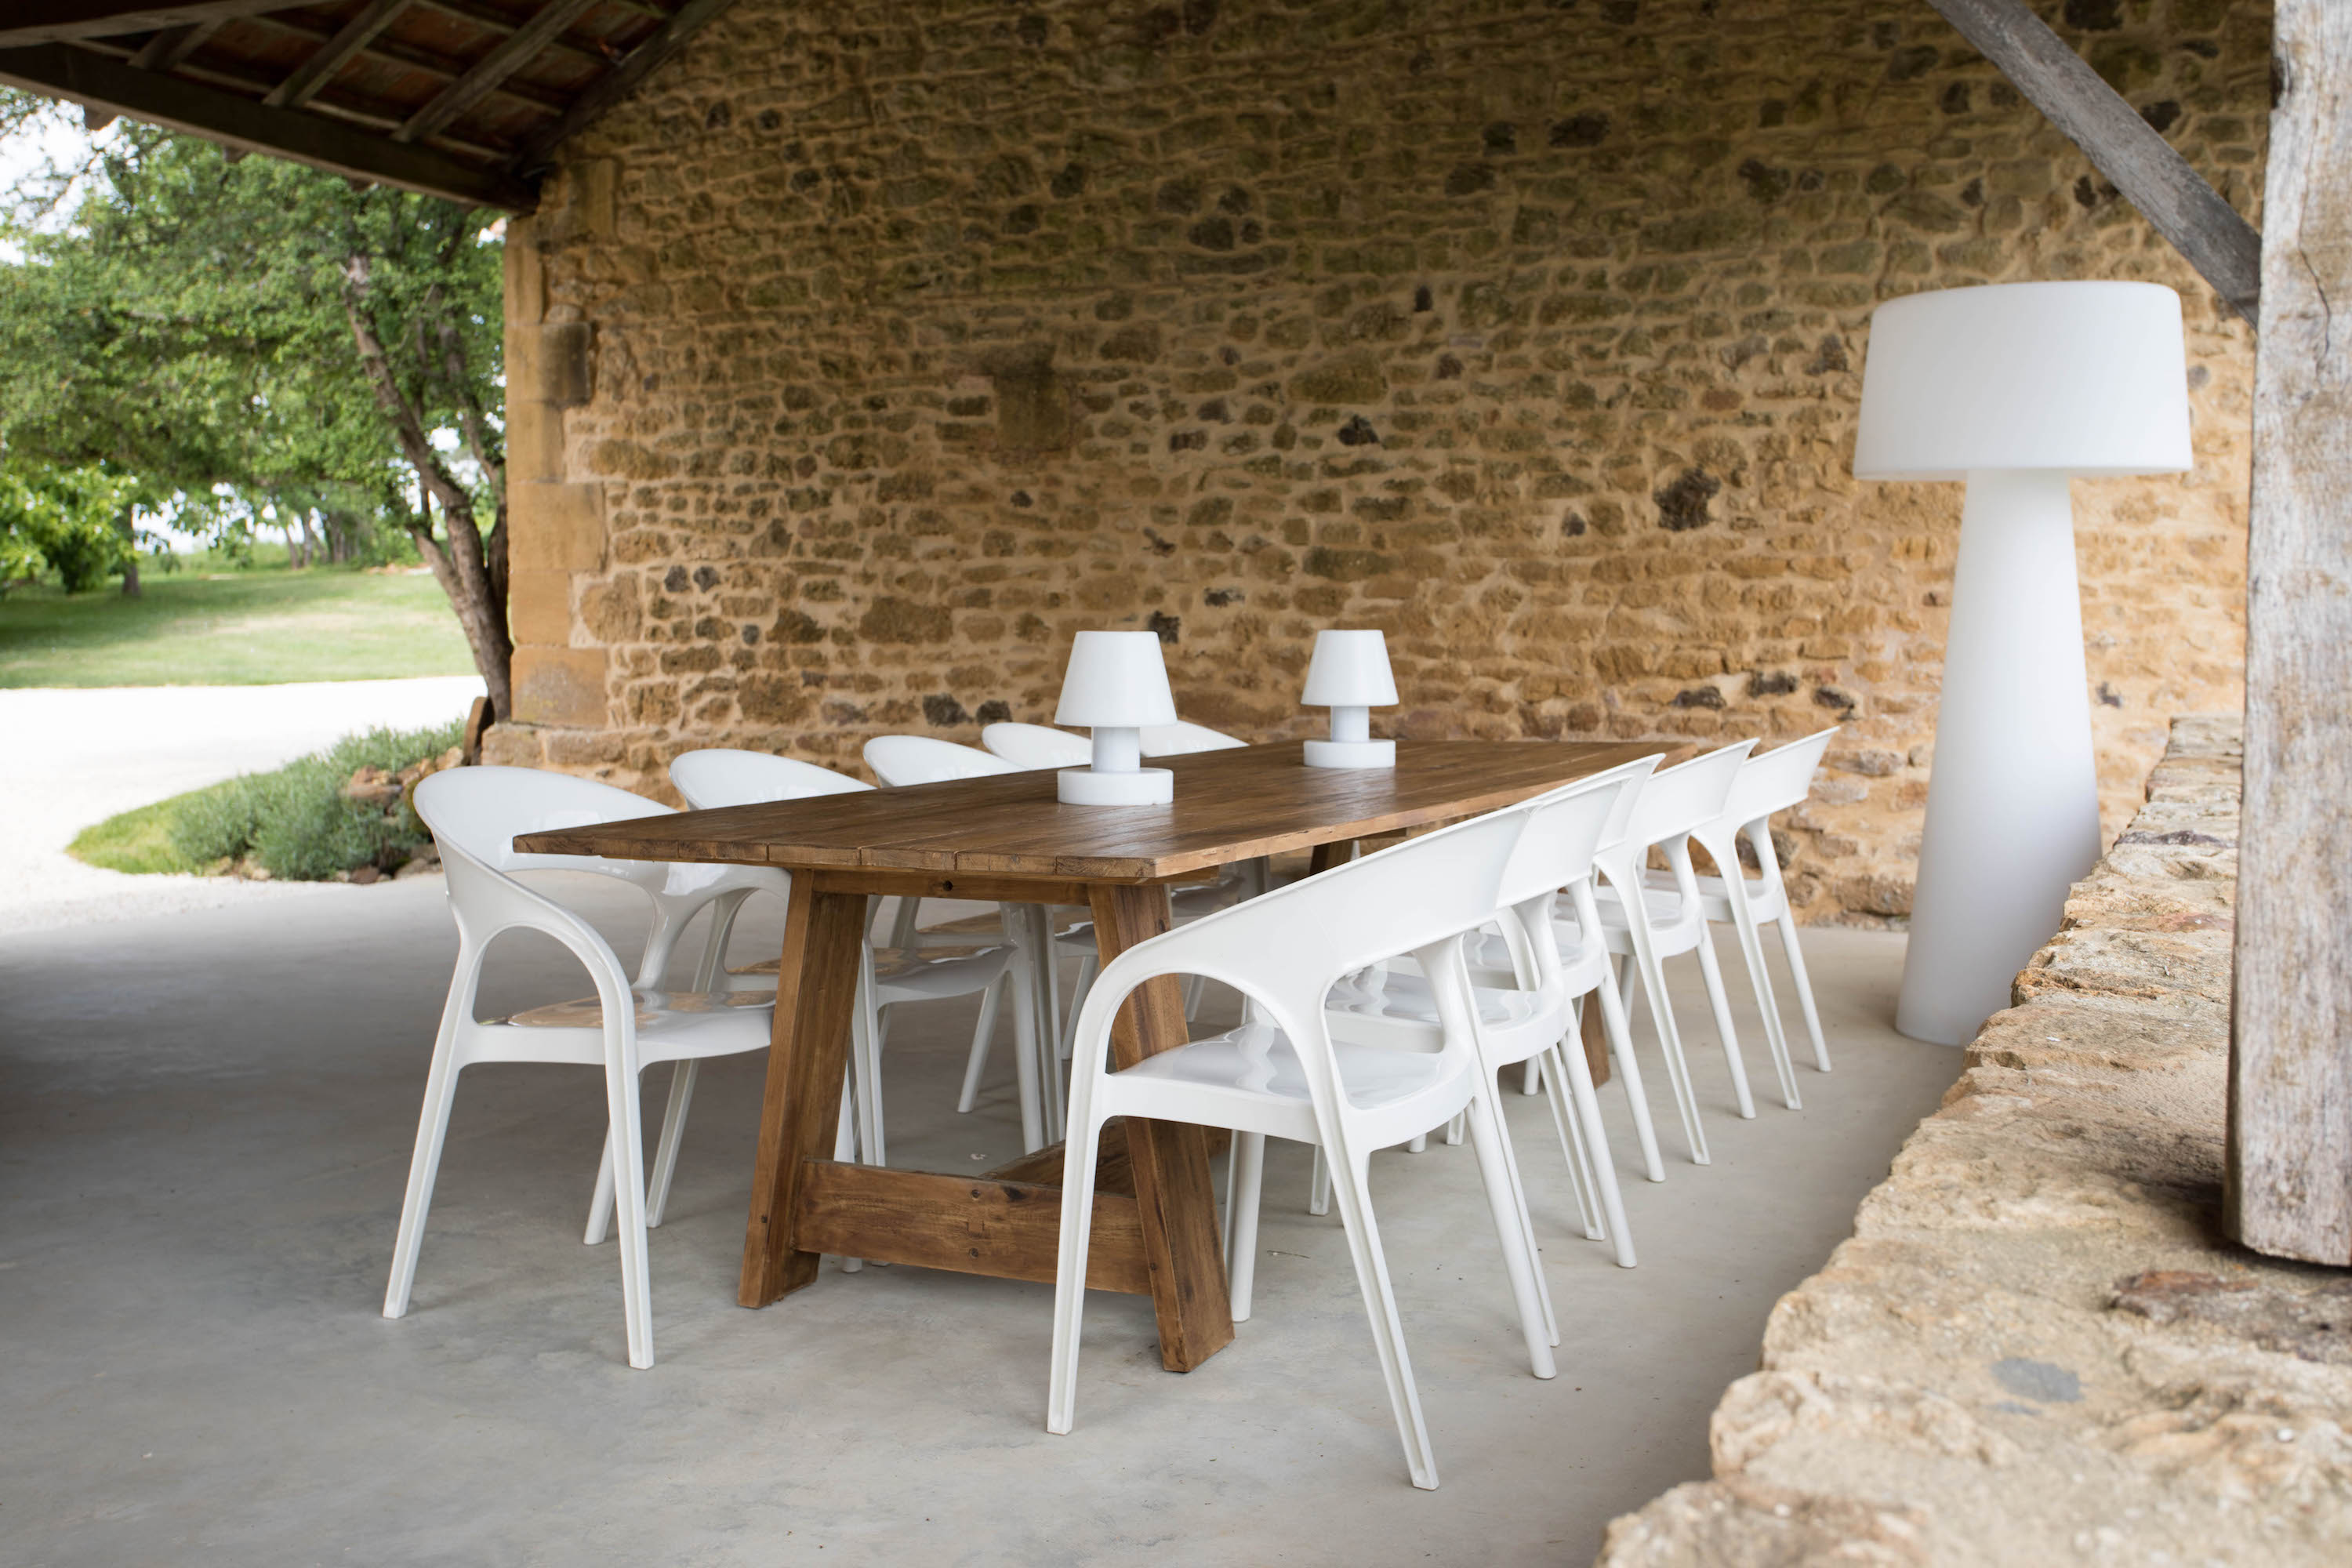 A wooden table with Pedrali chairs and outdoor lamp in the summer kitchen of Le Mas, a 5-star holiday home in the Dordogne, France